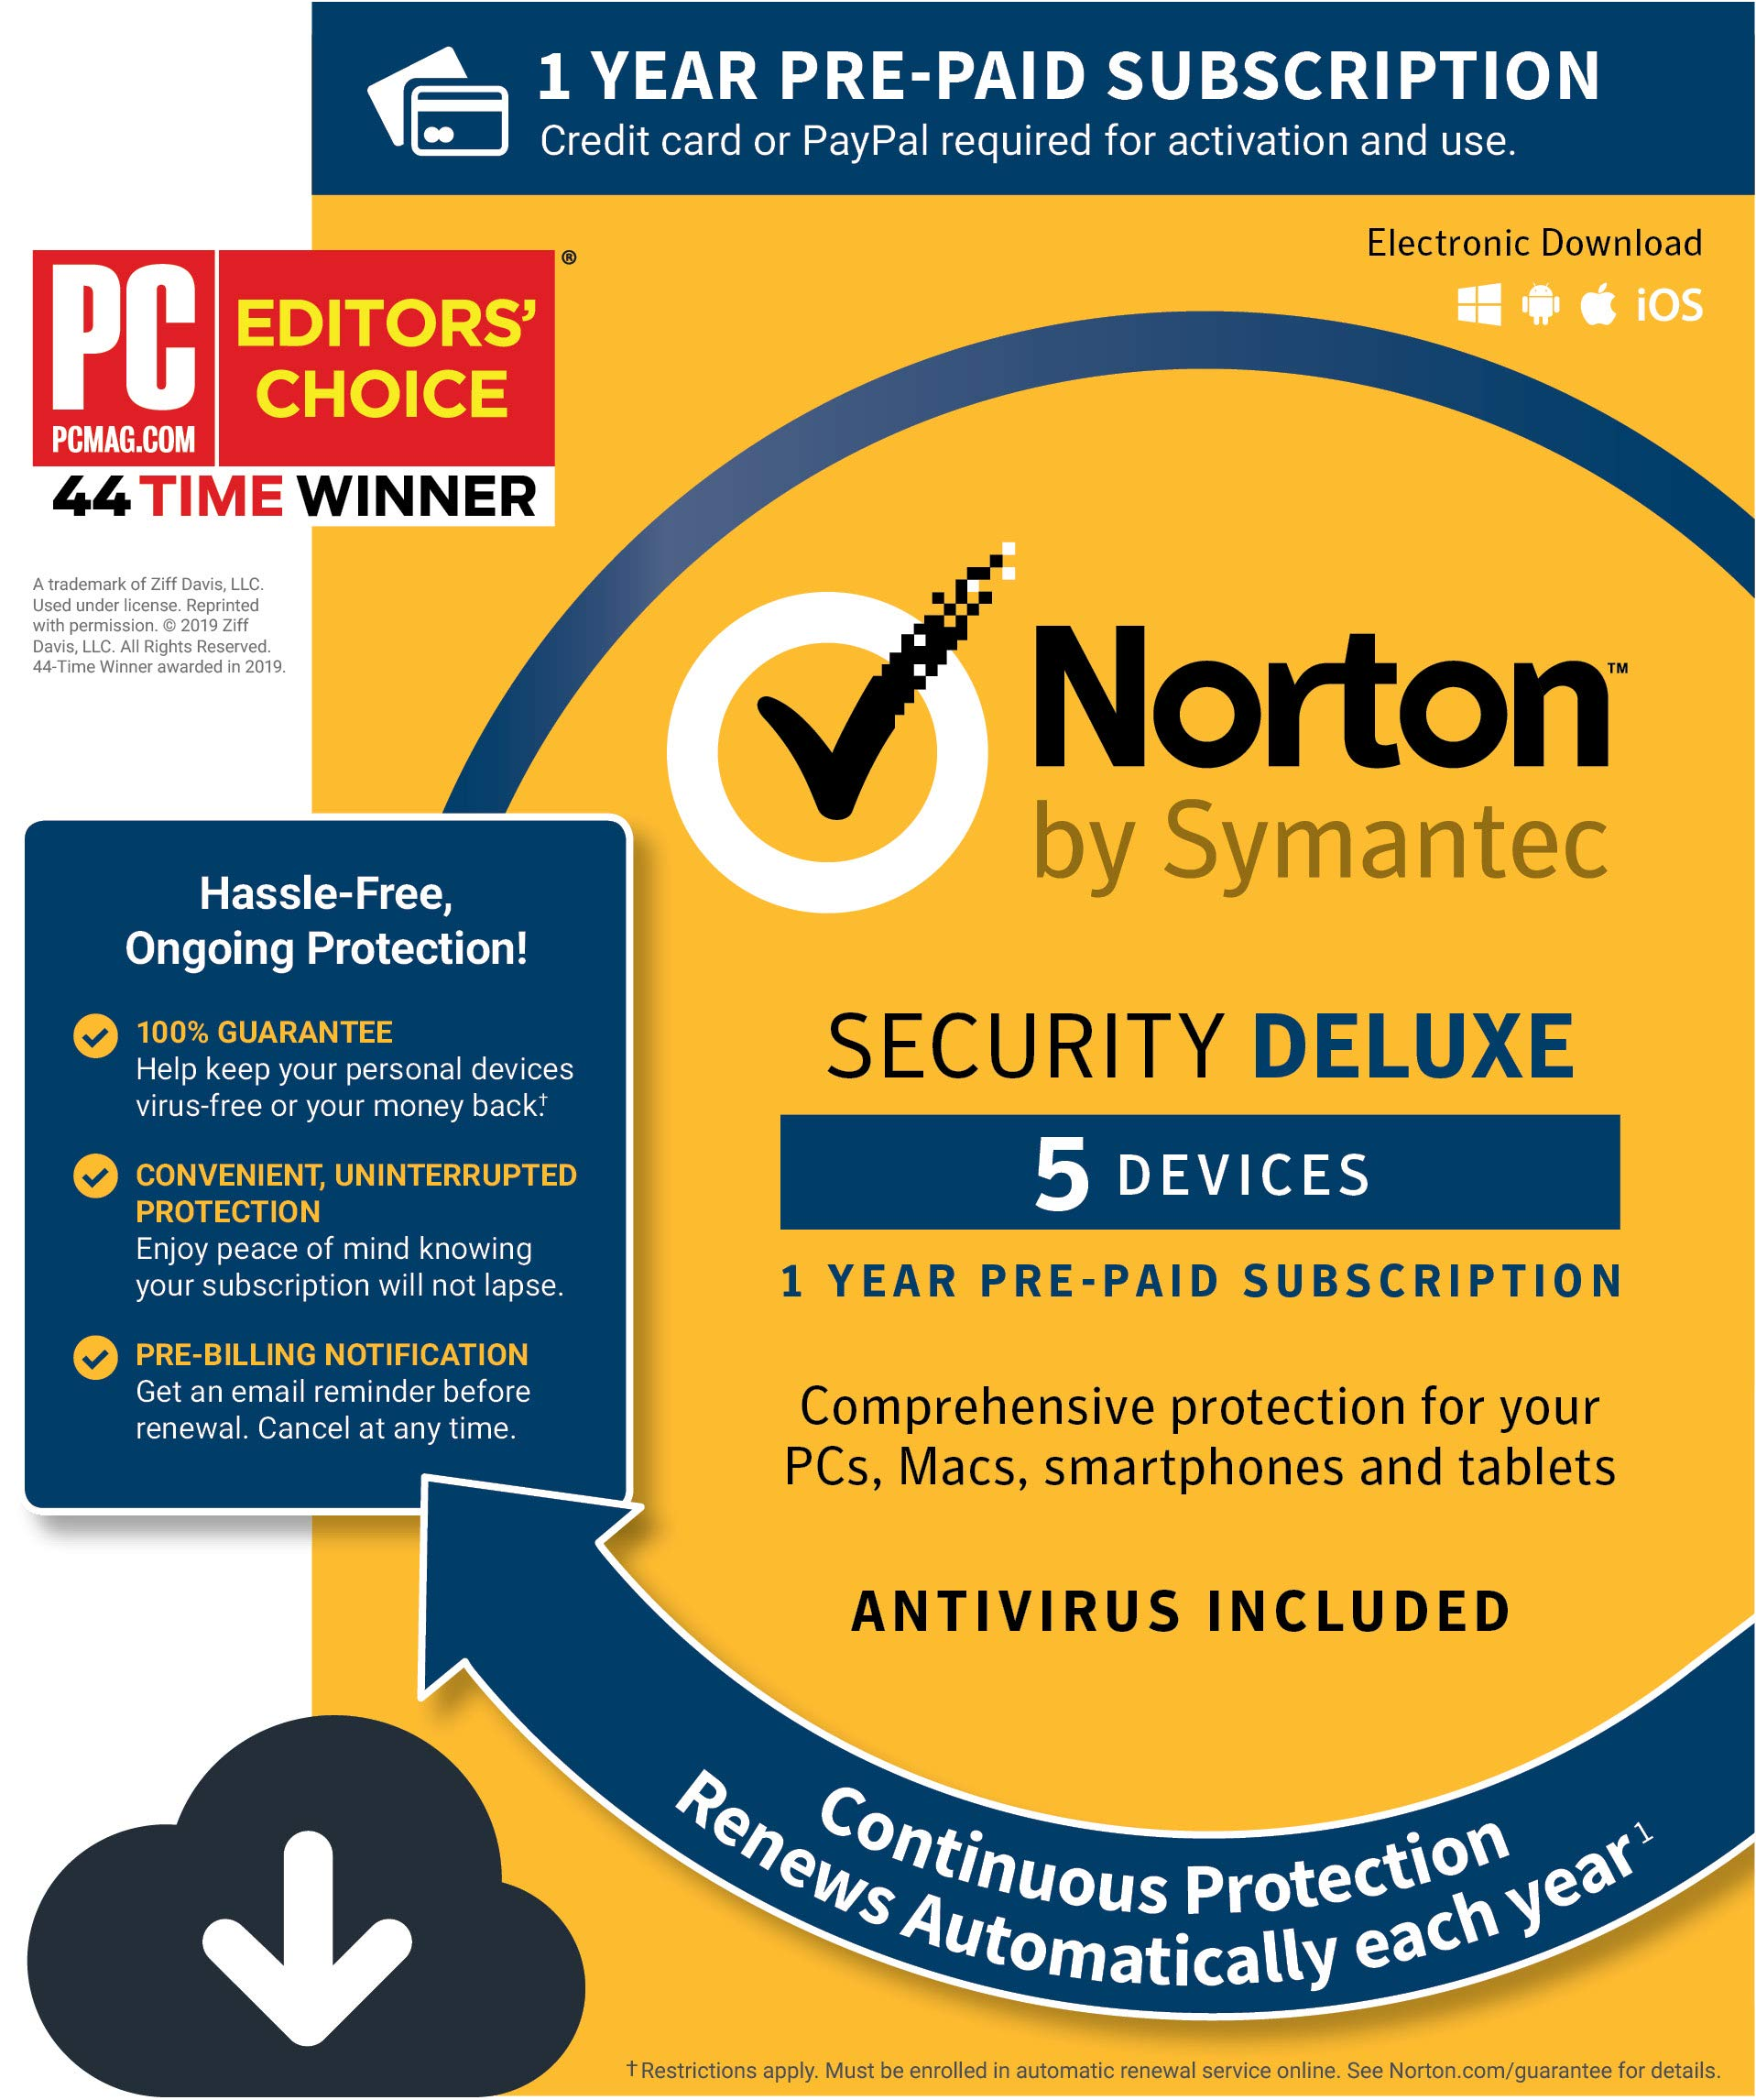 Norton Security Deluxe - Antivirus software for 5 Devices with Auto Renewal, Requires Payment Method - 1 Year Pre-Paid Subscription [PC/Mac/Mobile Download] by Symantec